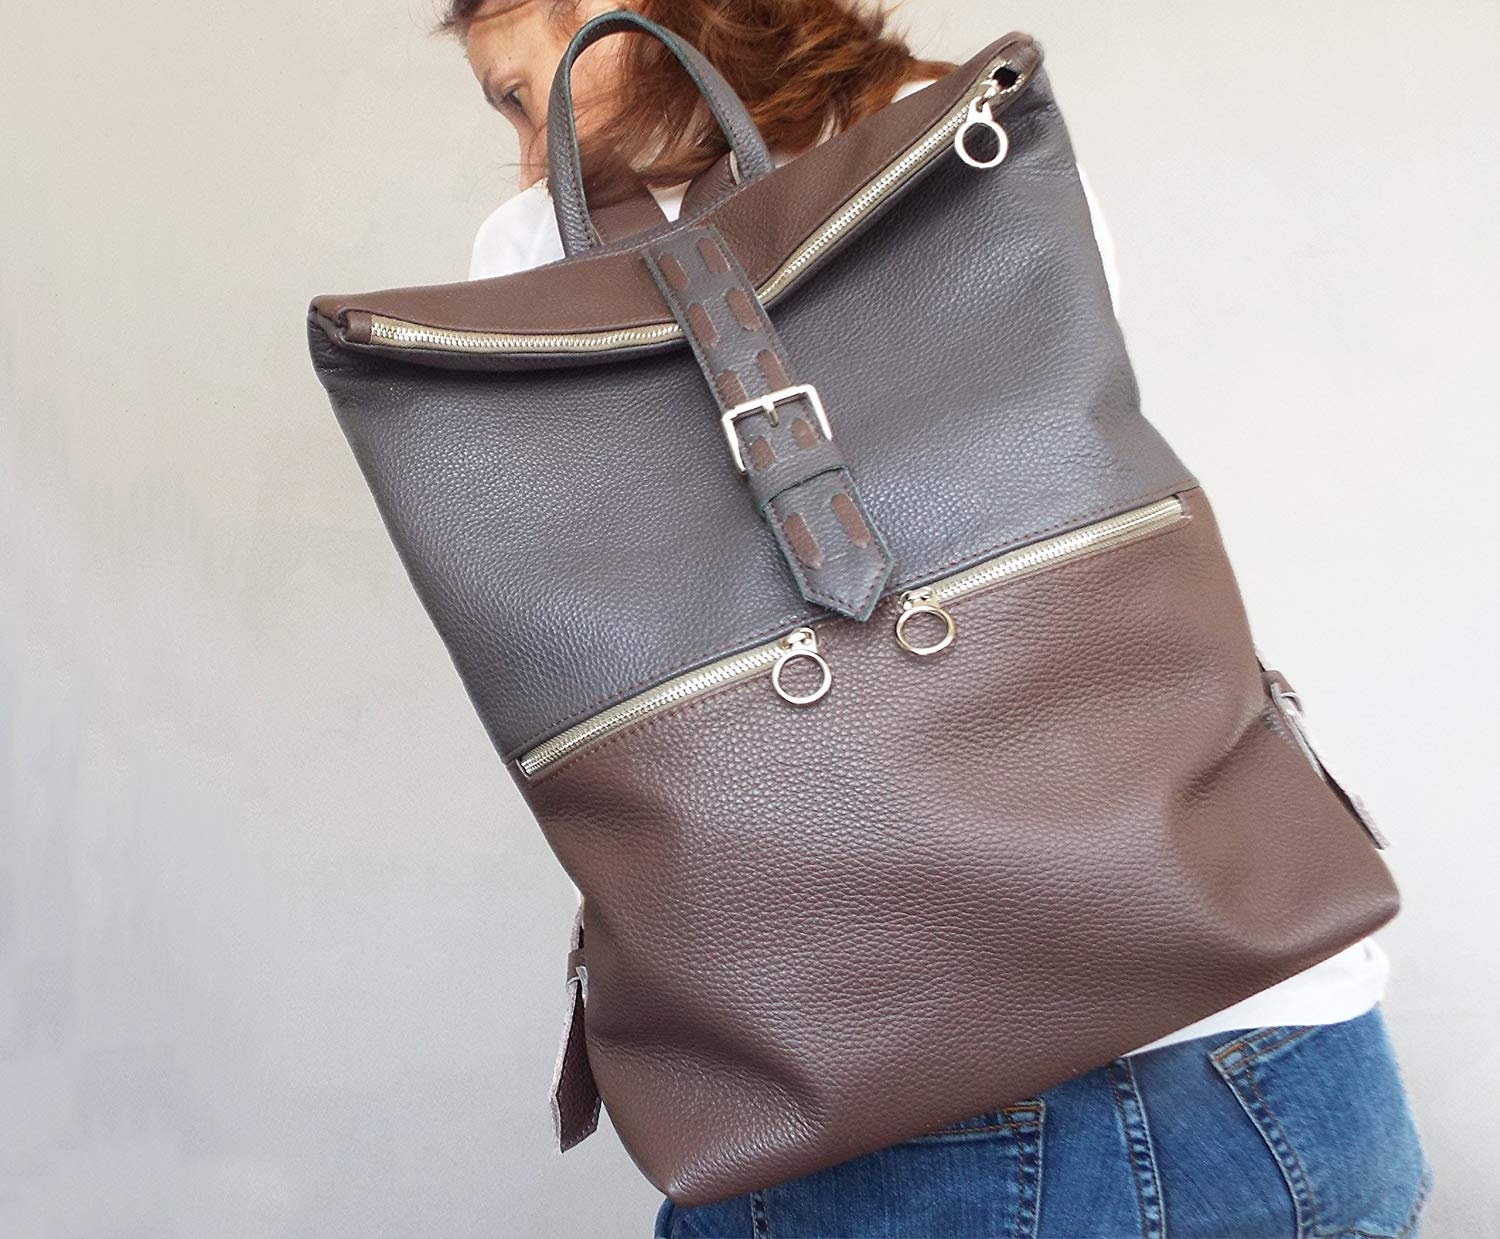 fe6c97d7e8 Get Quotations · Leather backpack. Leather rucksack. Laptop bag leather.  Gray brown leather backpack women.